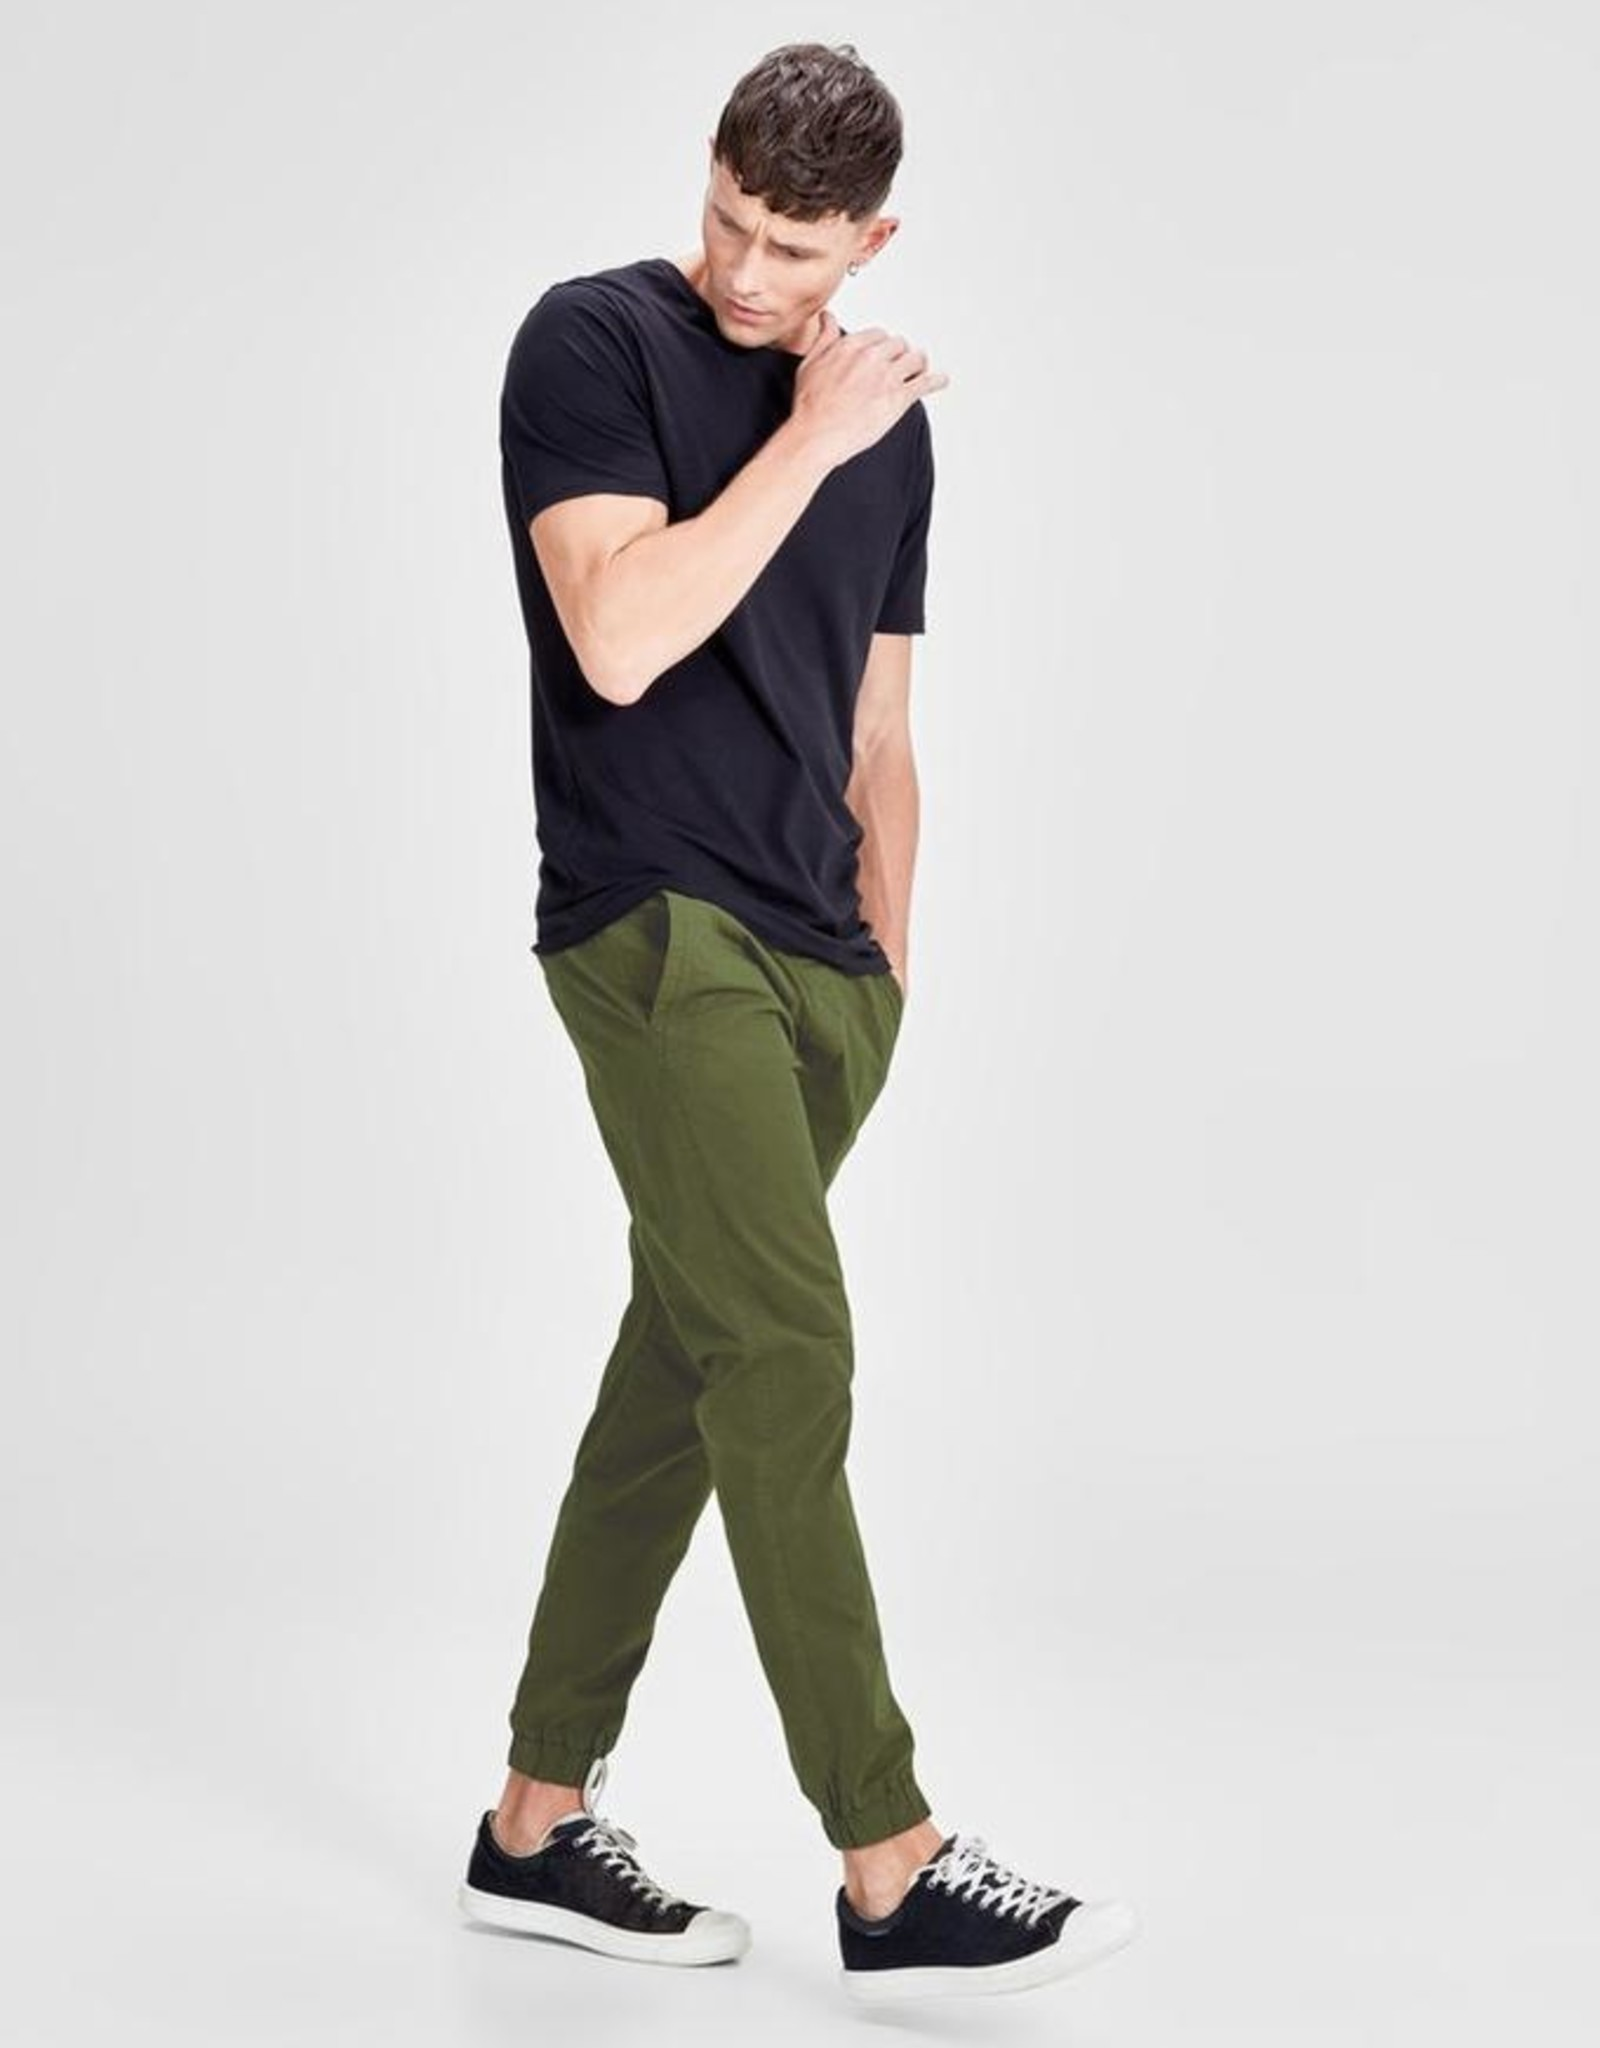 JACK & JONES OLIVE NIGHT JOGGER